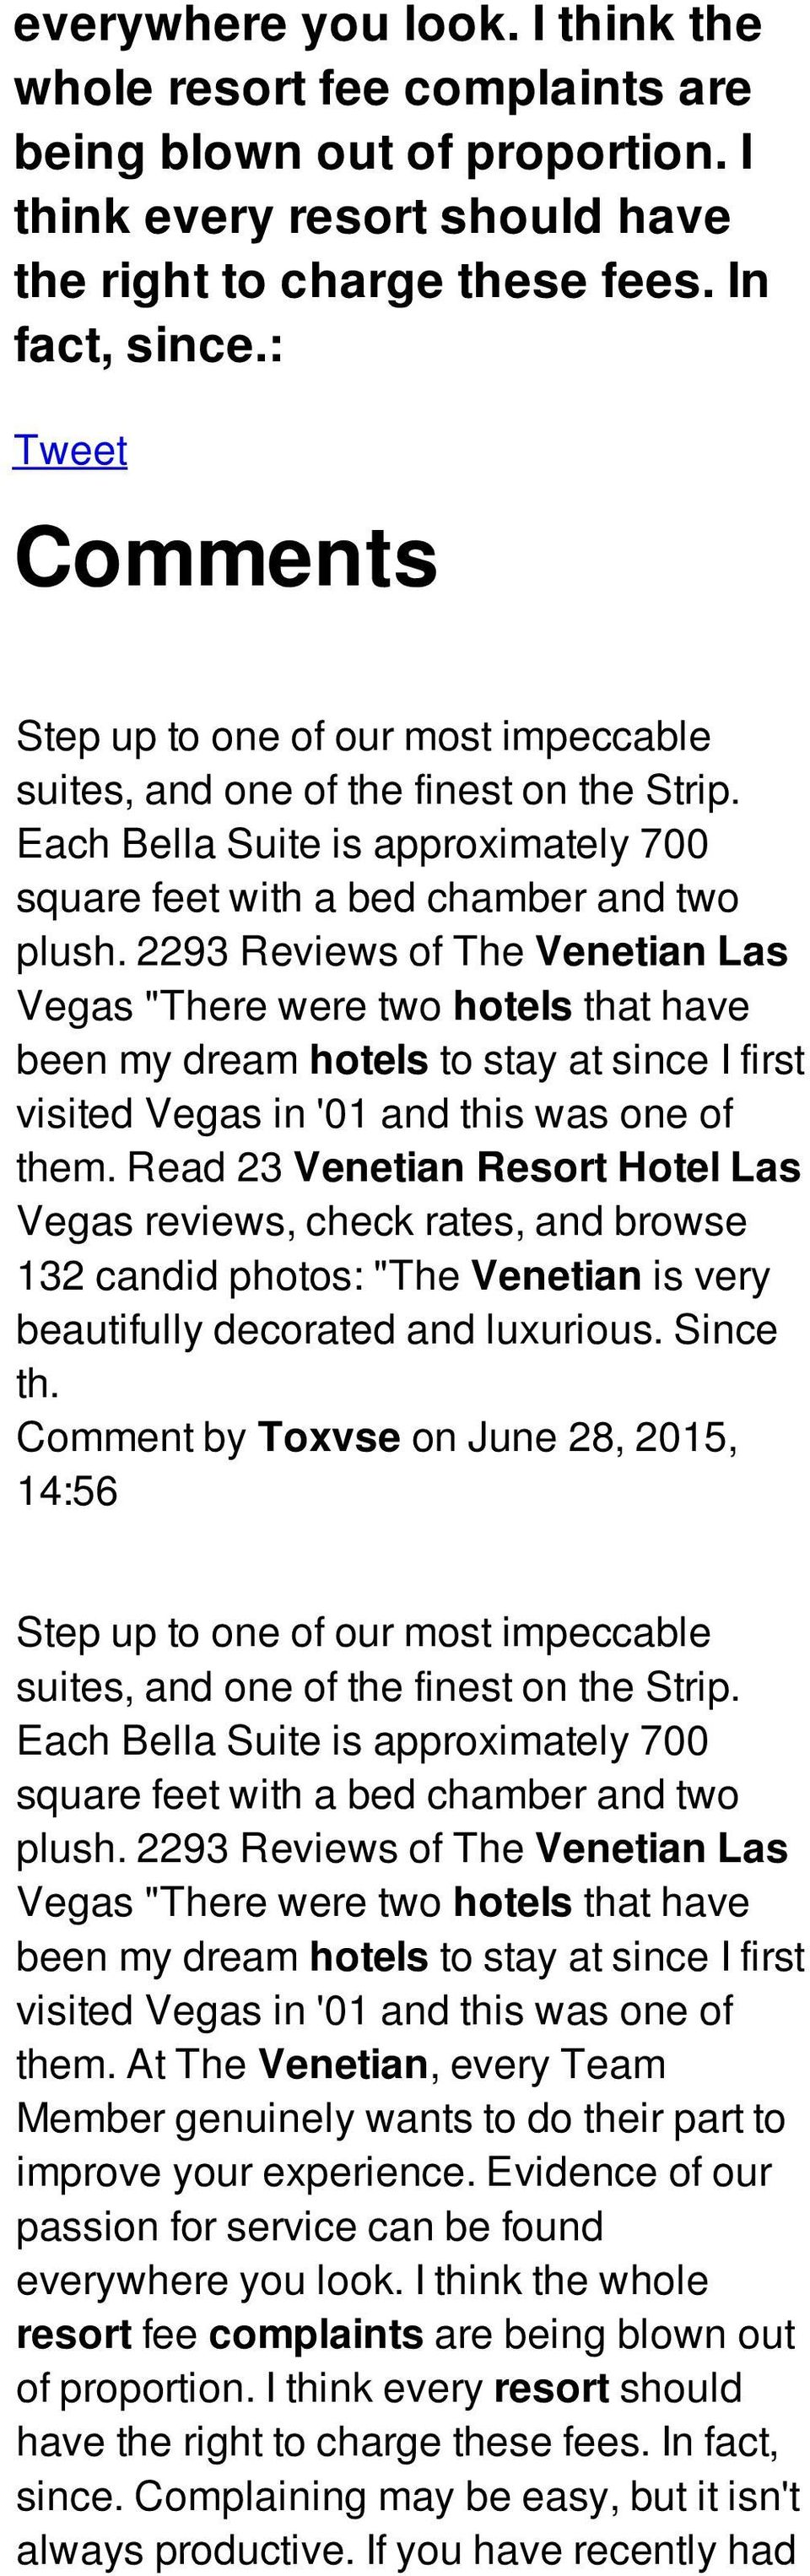 "2293 Reviews of The Venetian Las Vegas ""There were two hotels that have been my dream hotels to stay at since I first visited Vegas in '01 and this was one of them."